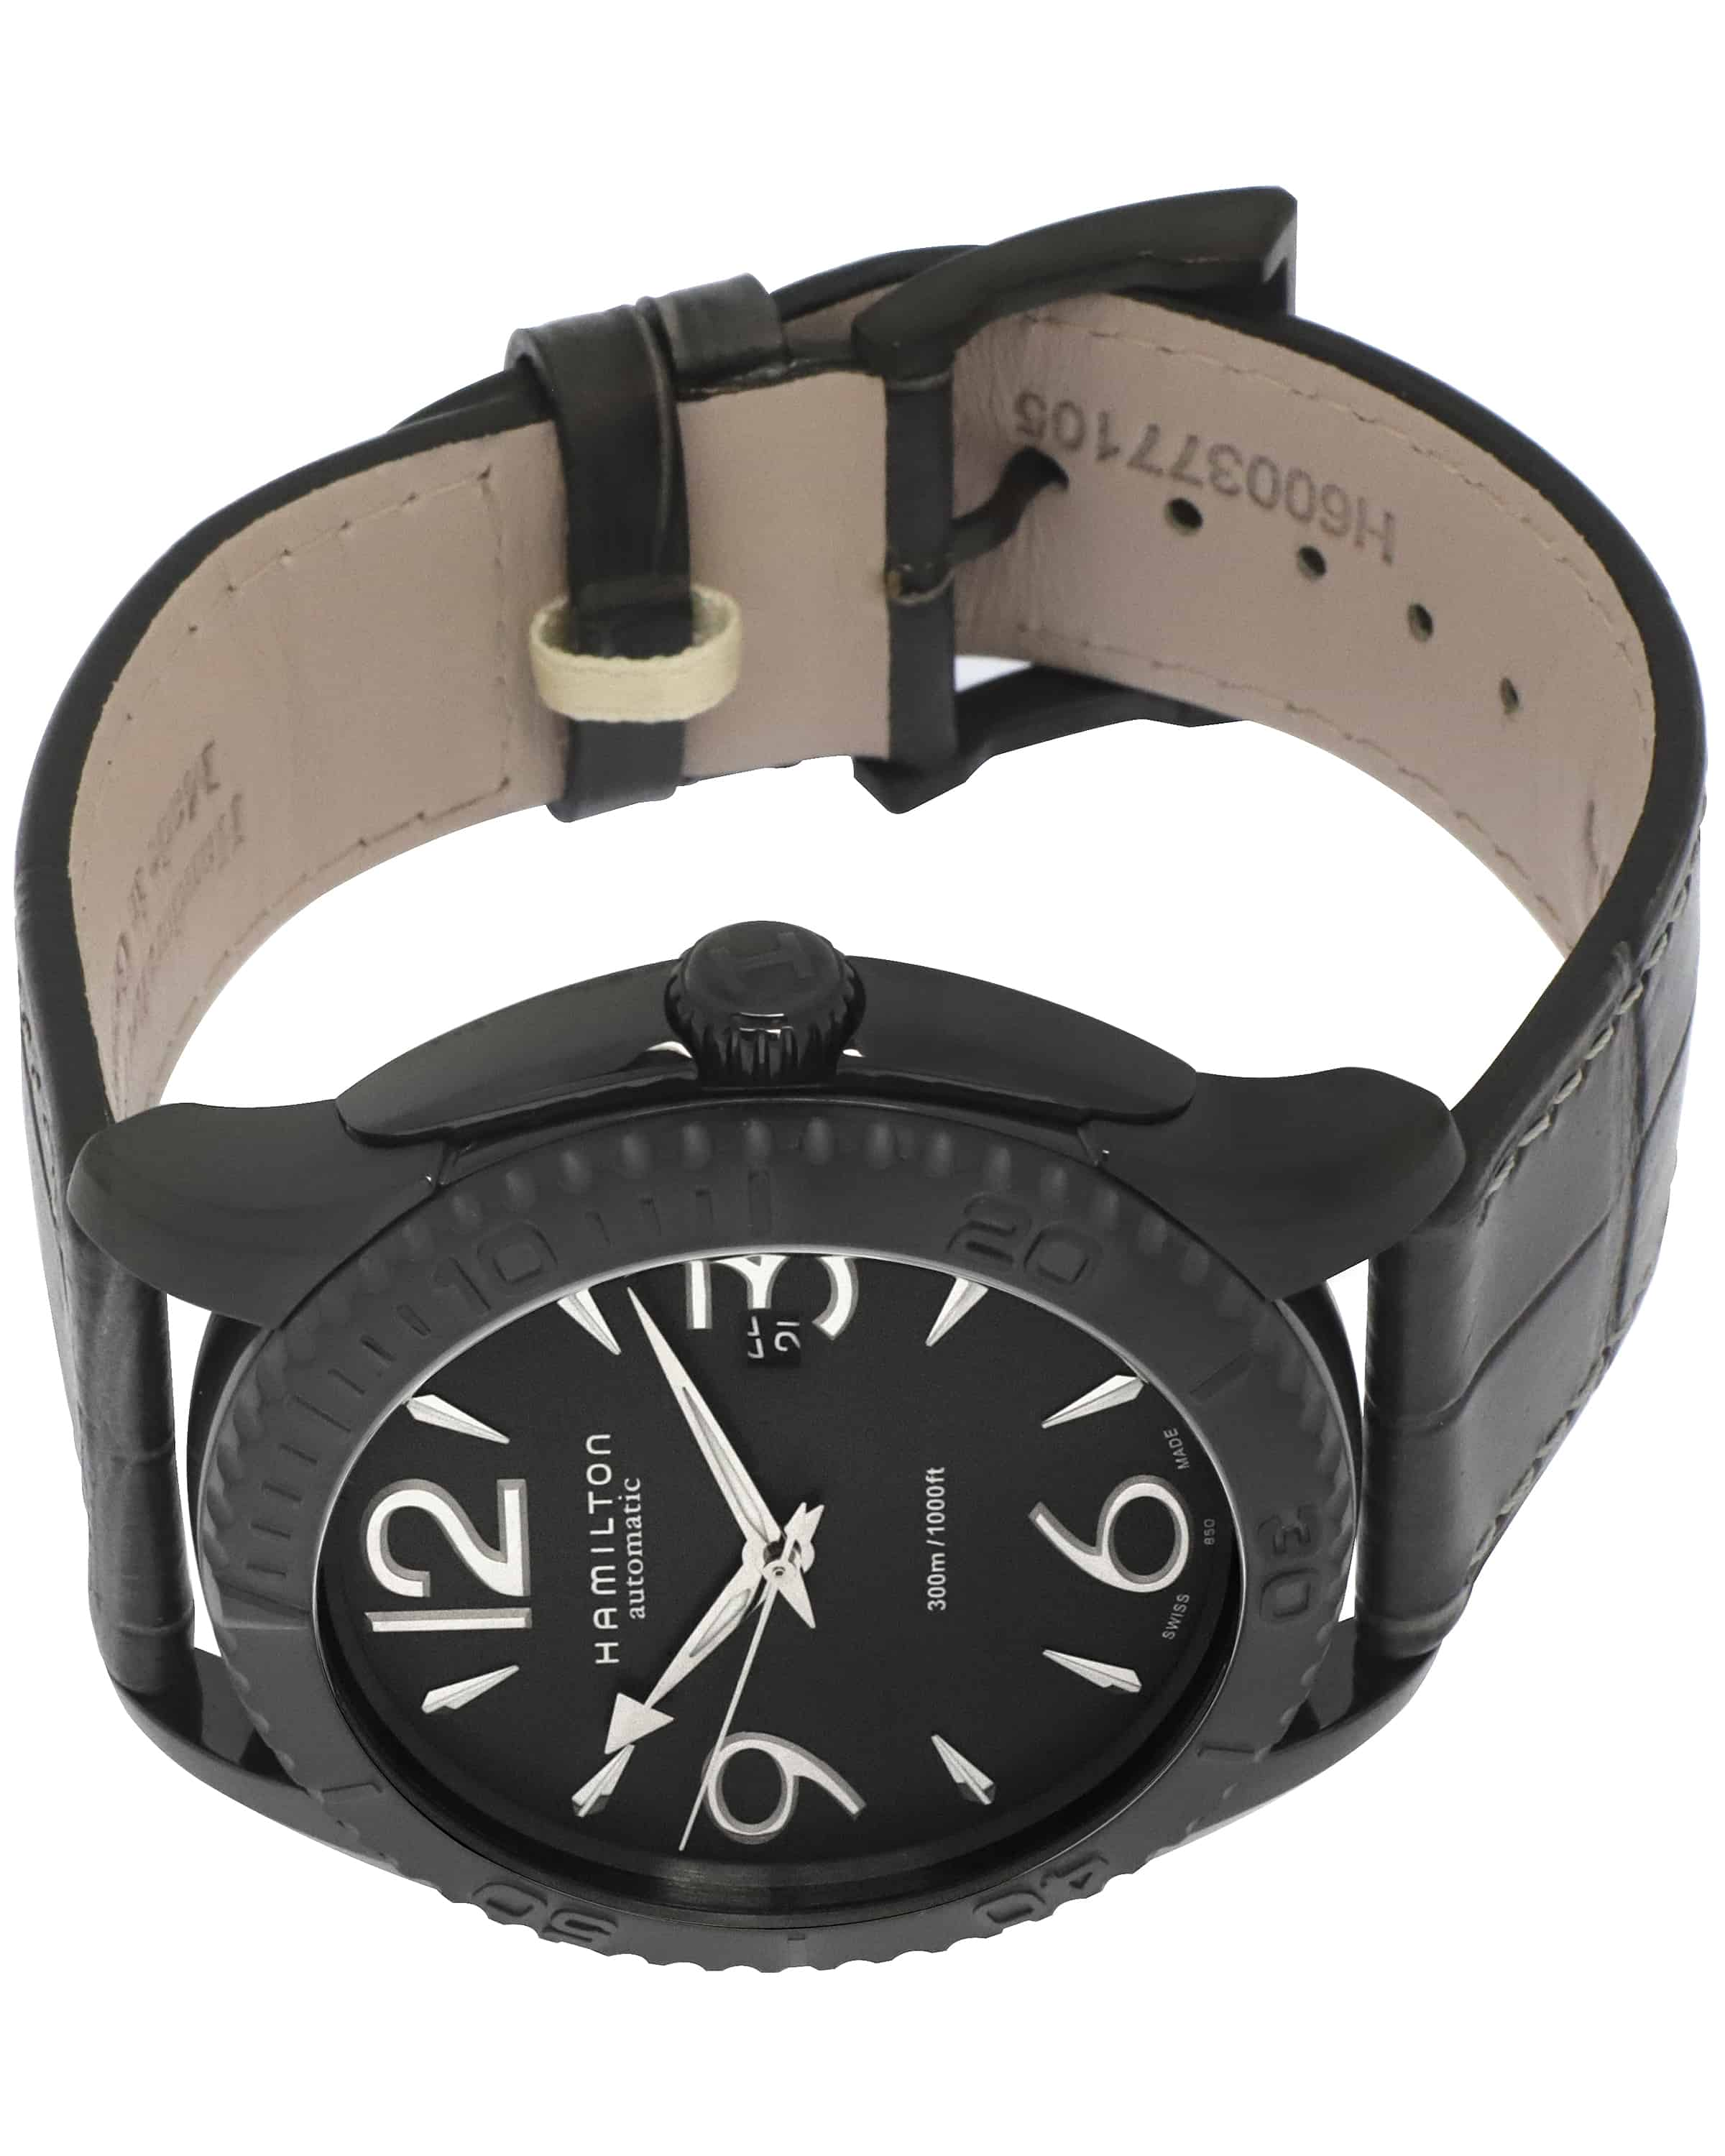 Hamilton Jazzmaster Black Pvd Stainless Steel Automatic Men's Watch H37785685